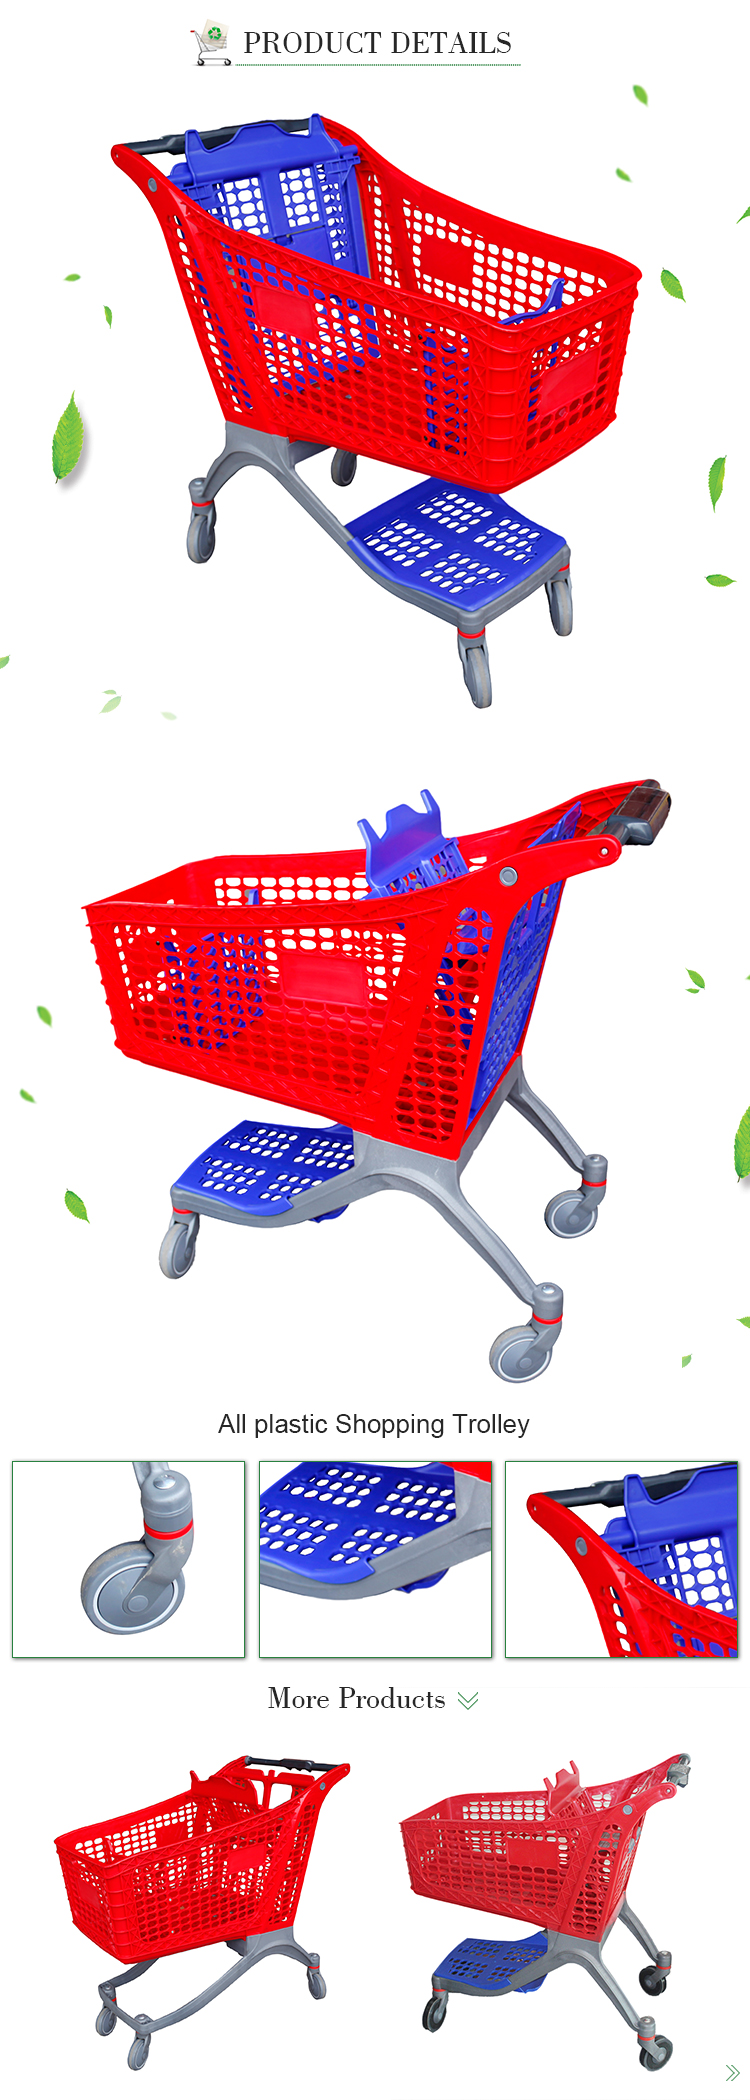 Shopping Trolley Carts Custom Retail Trolley Shopping Trolley with Baskets